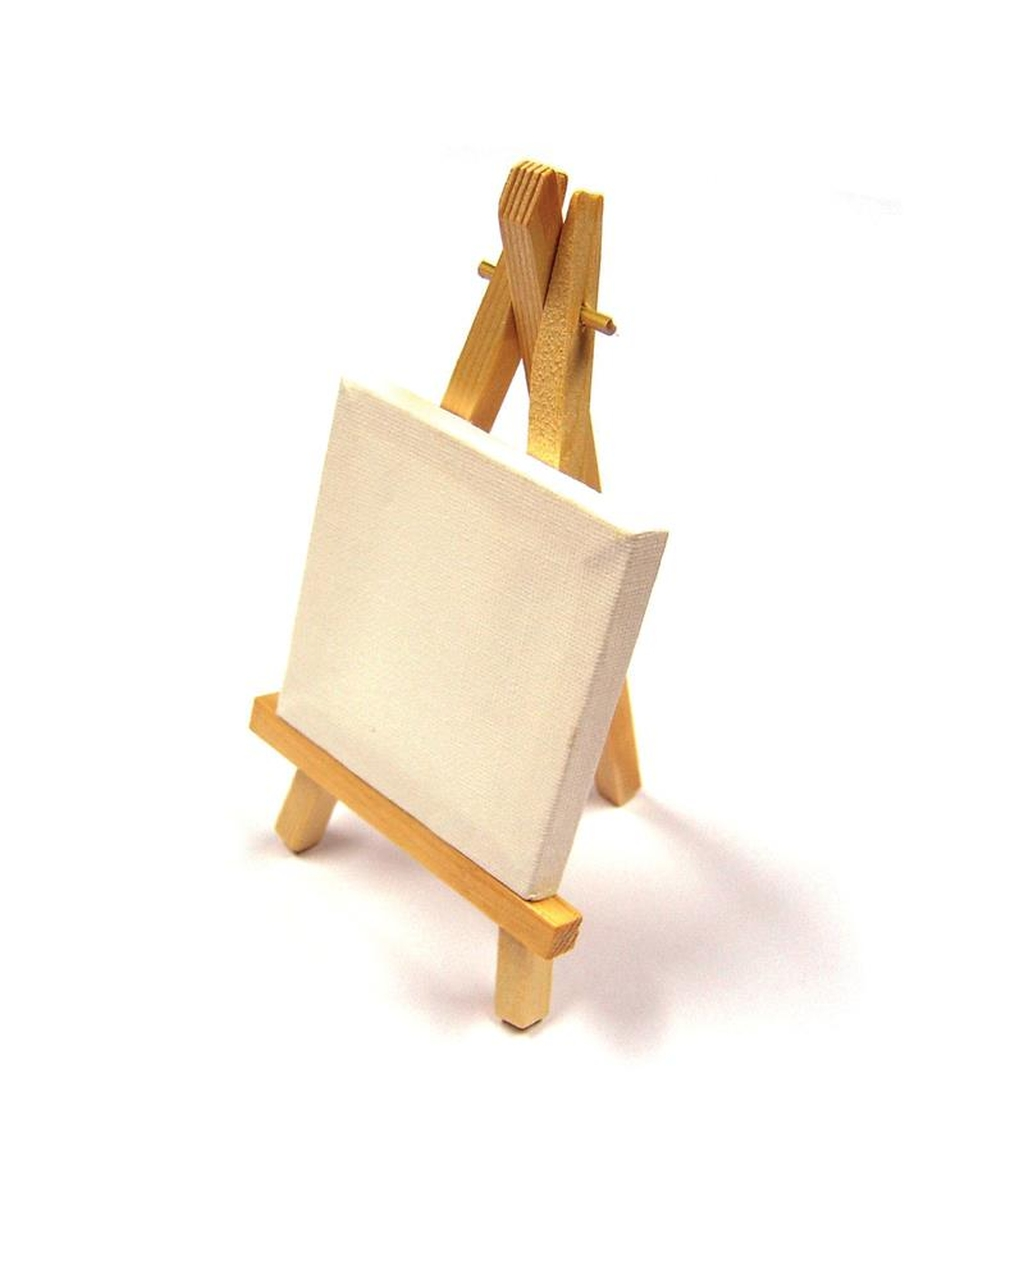 Canvas with Mini Easel 75mm x 75mm